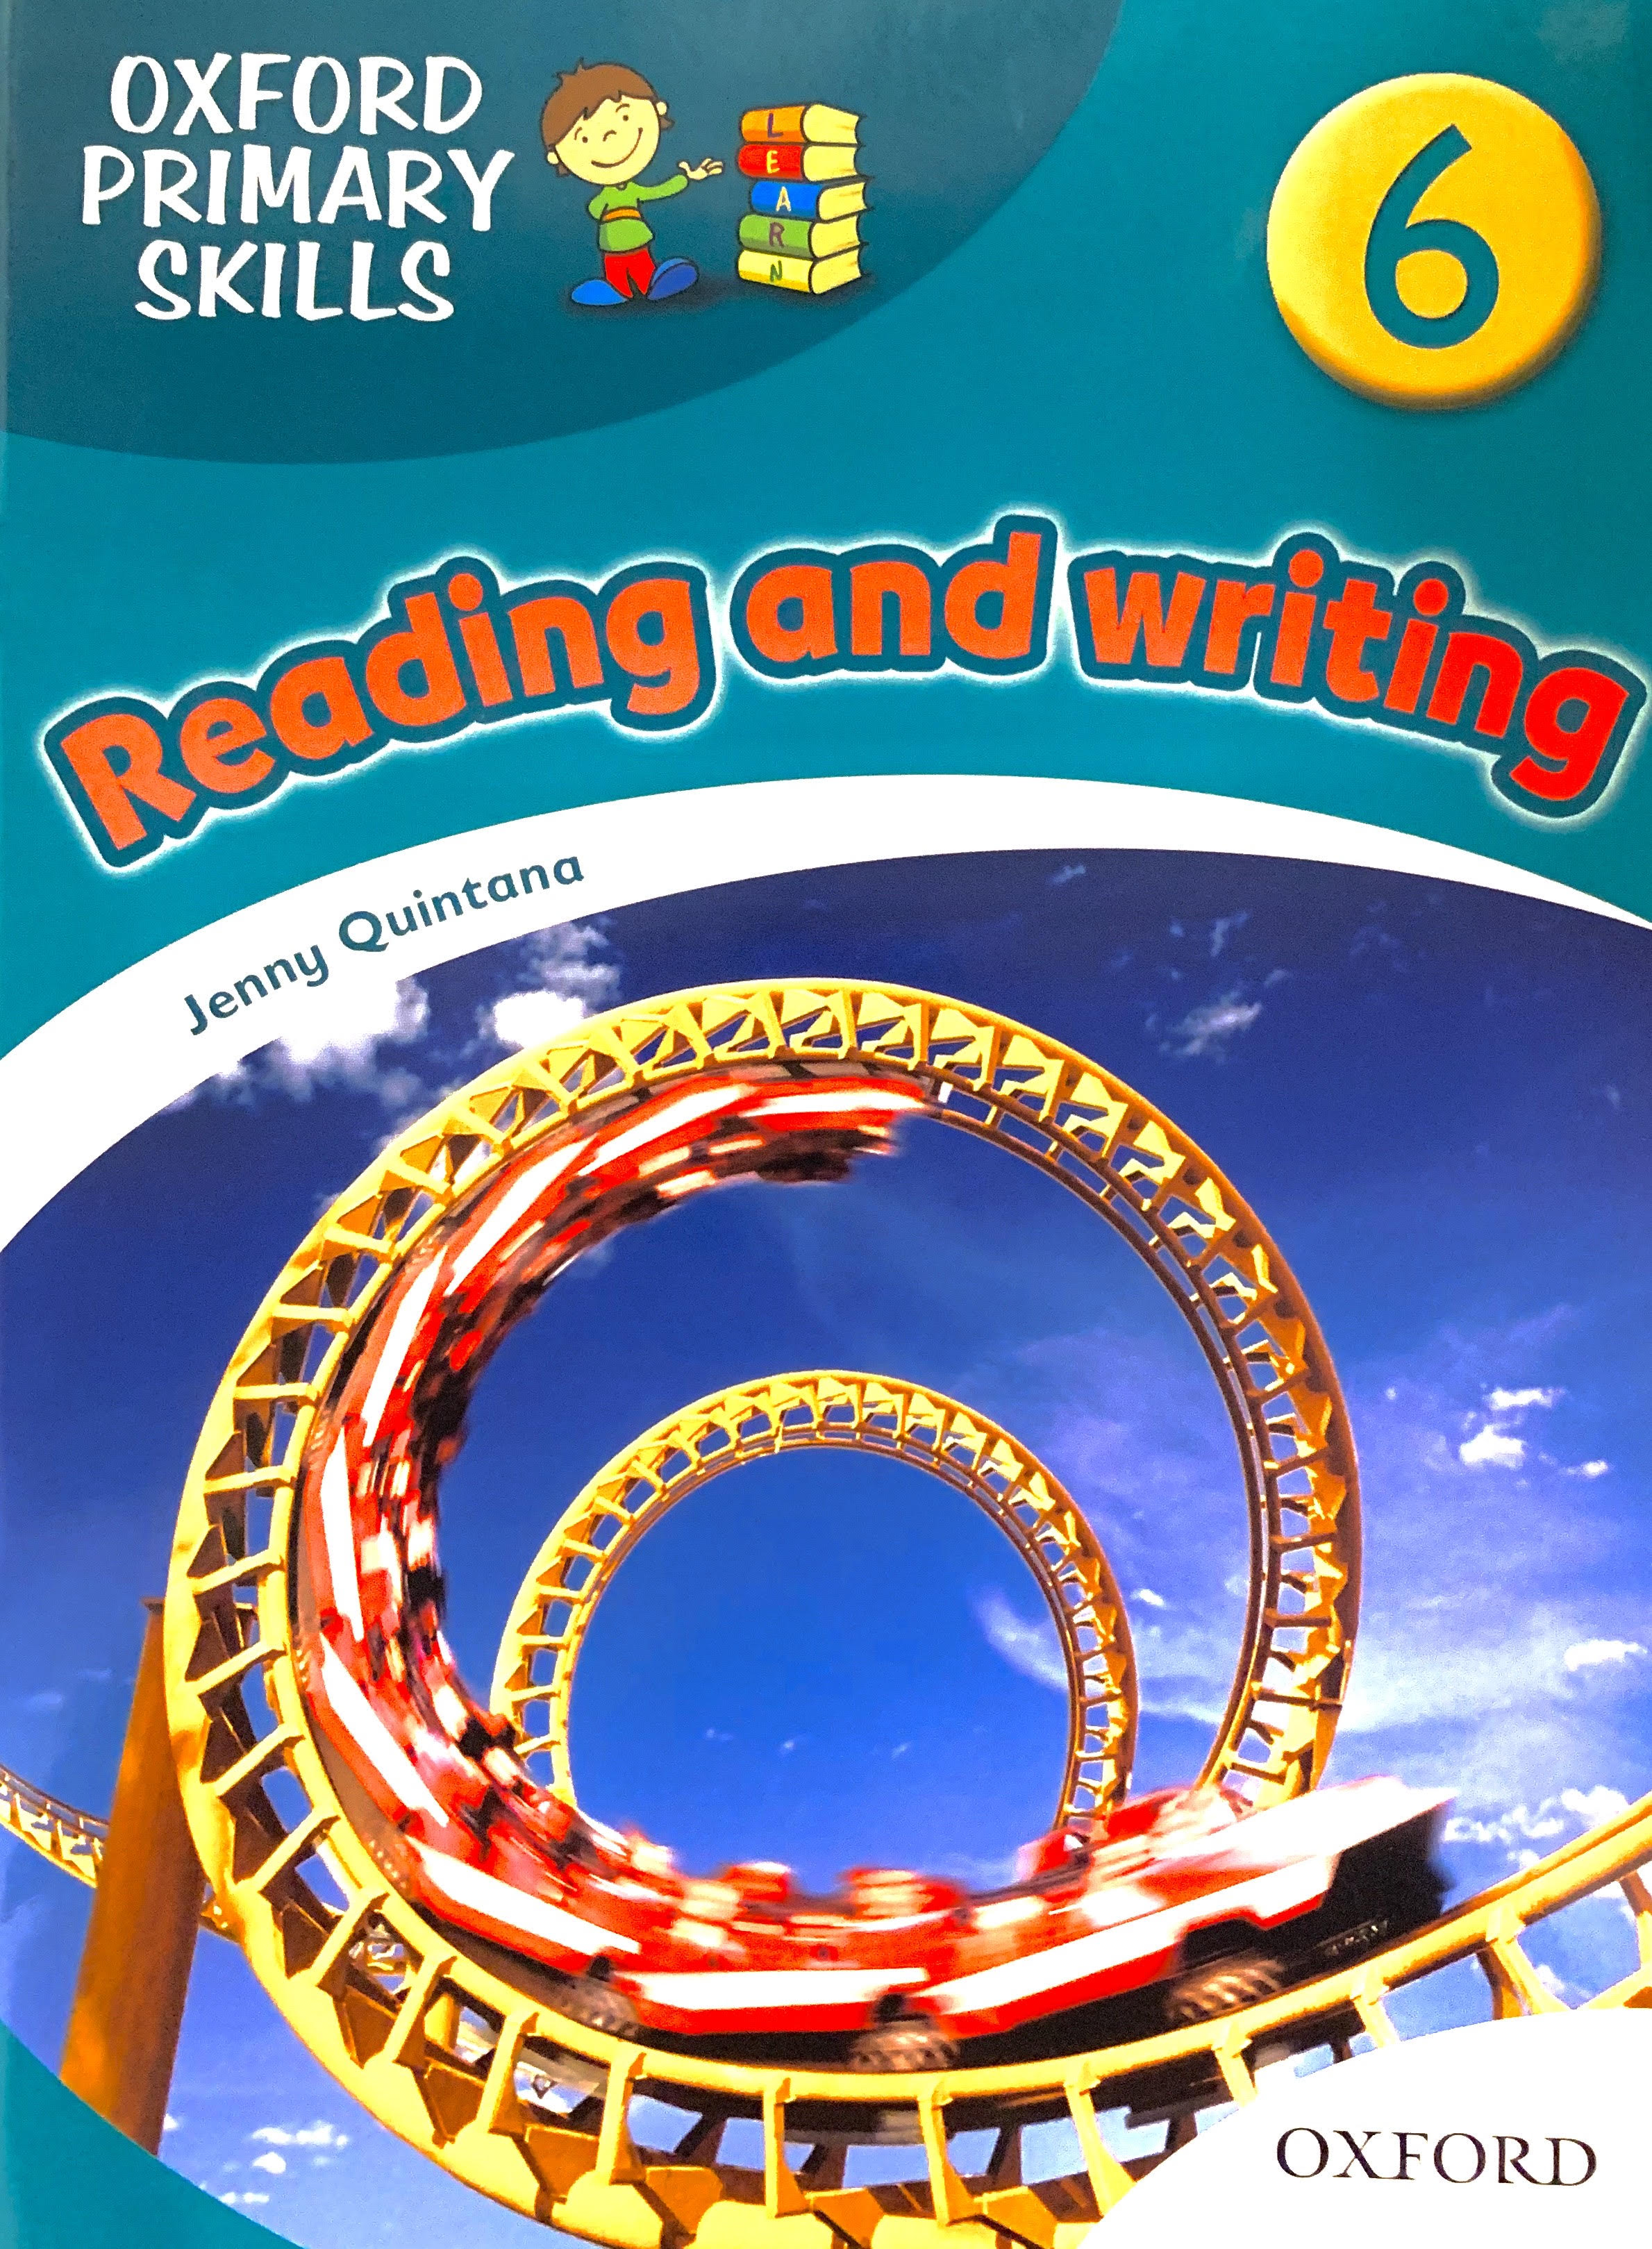 oxford Primary skills Reading and Writing 6